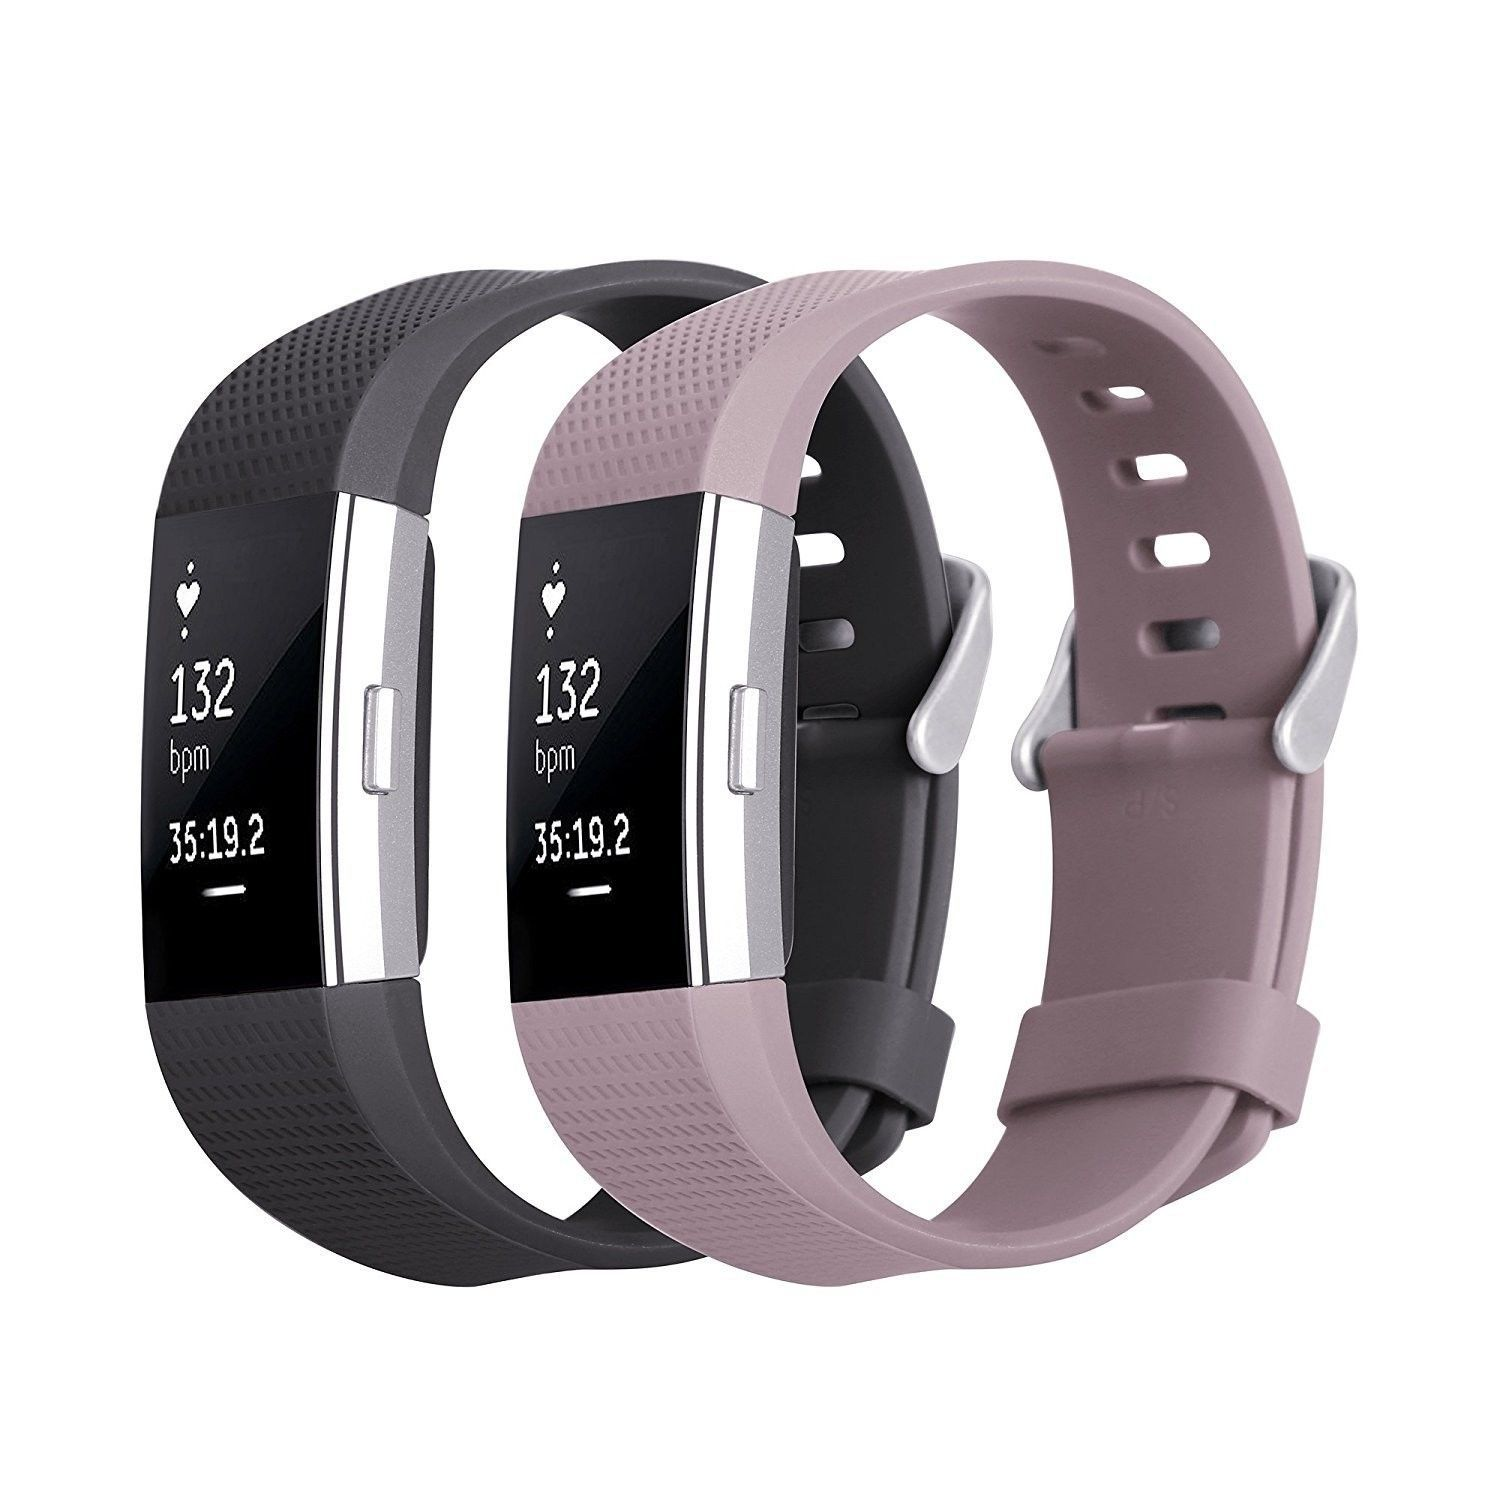 Lavender Amp Black 2pk Large Wristband Band Strap Bracelet For Fitbit Charge 2 Ebay Fitness Wristband Fitbit Workout Accessories